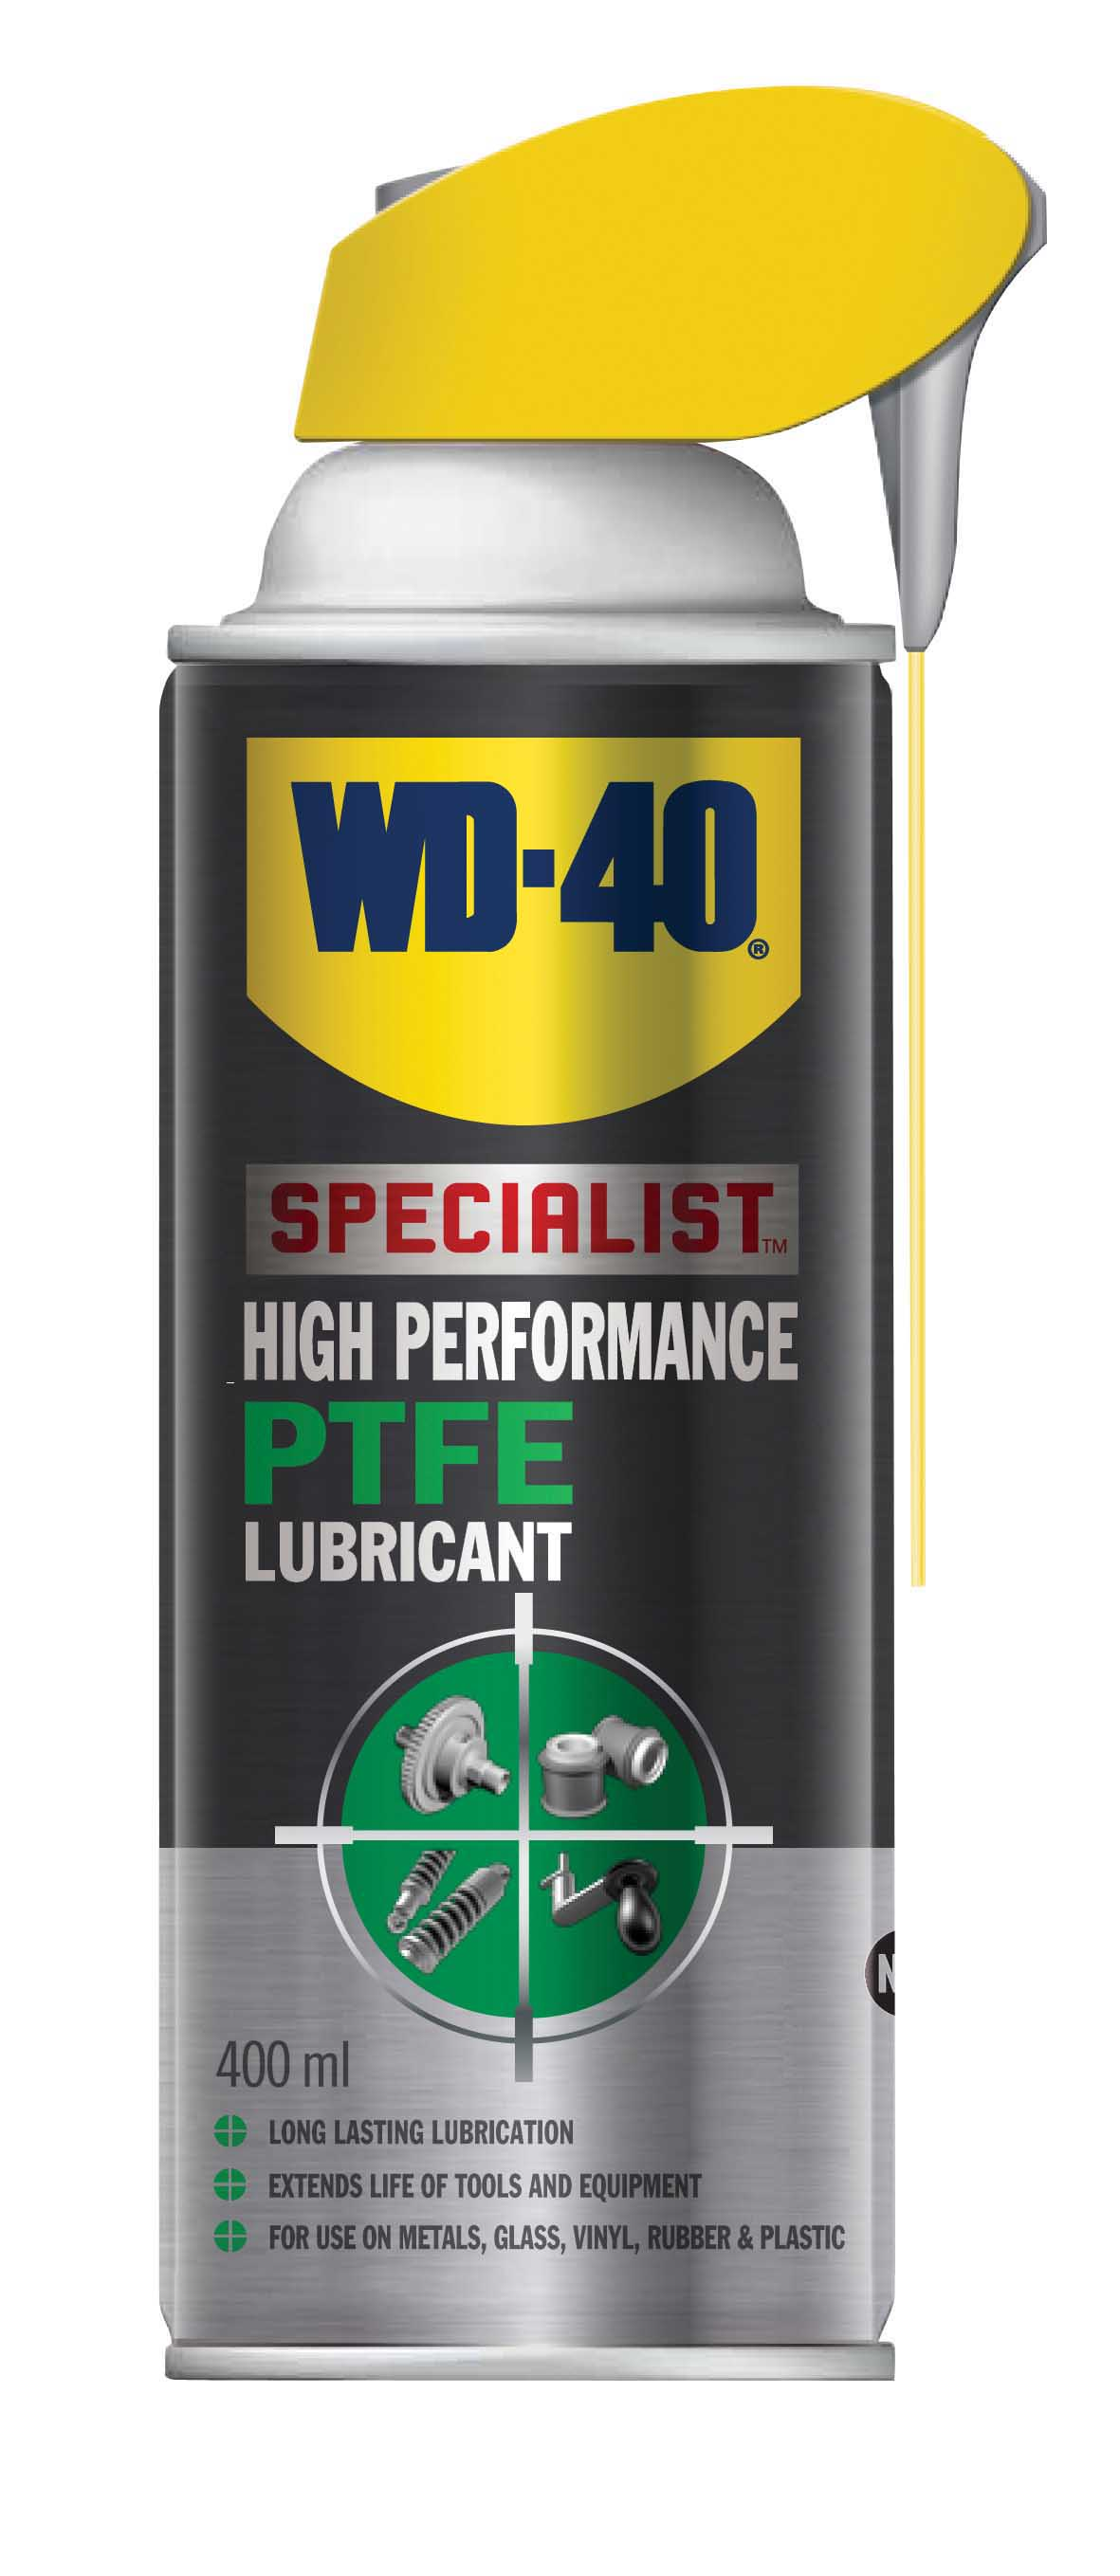 Specialist High Performance PTFE Lubricant Maintenance Spray 400ml WD-40 44397